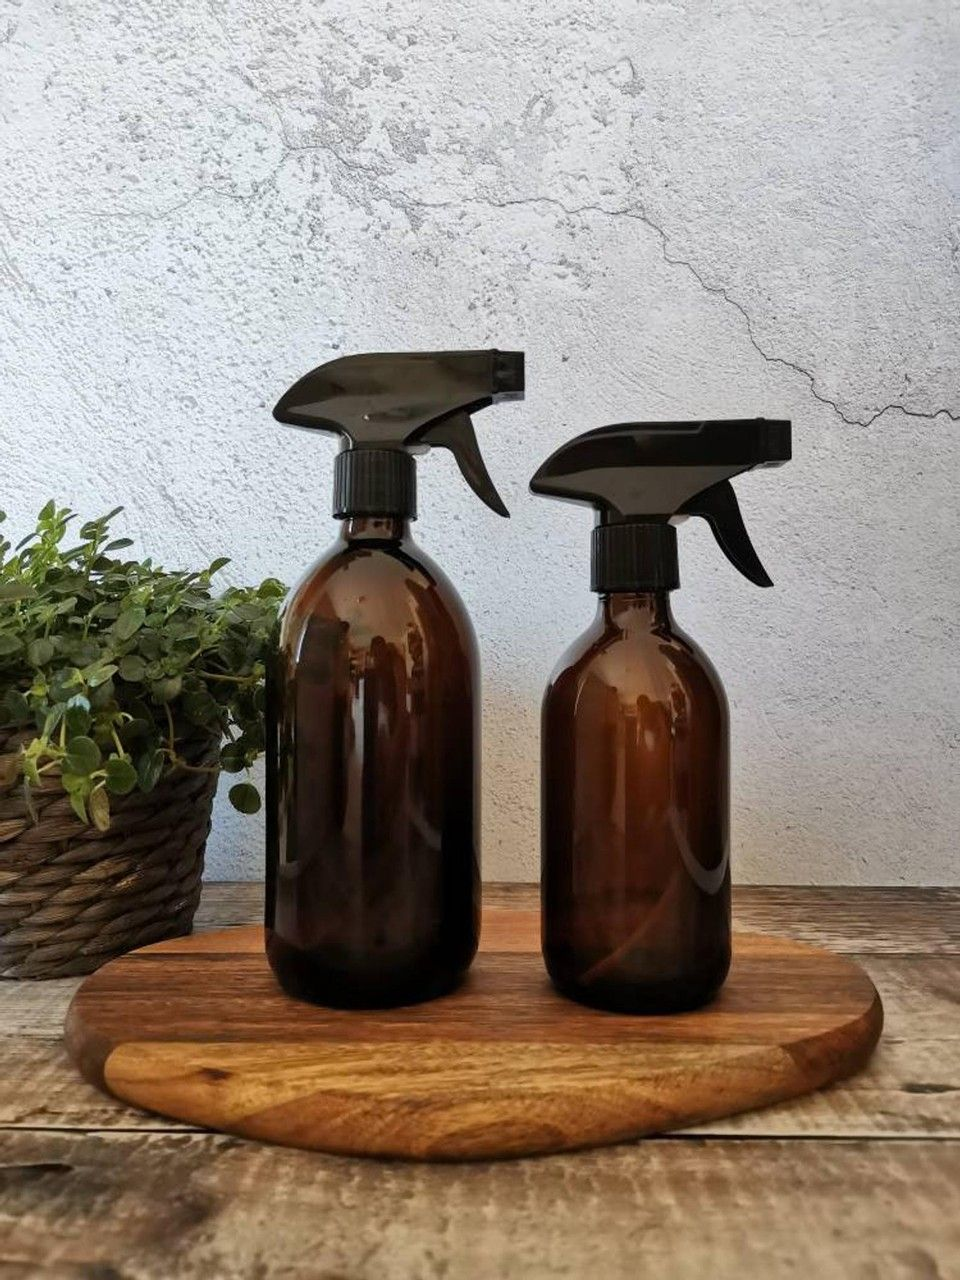 The Ultimate Zoflora Guide Zoflora Uses Zoflora Pet Plus Our Favourite Scents Your Home Style In 2020 Wood Polish Natural Cleaning Products Ceramic Sinks